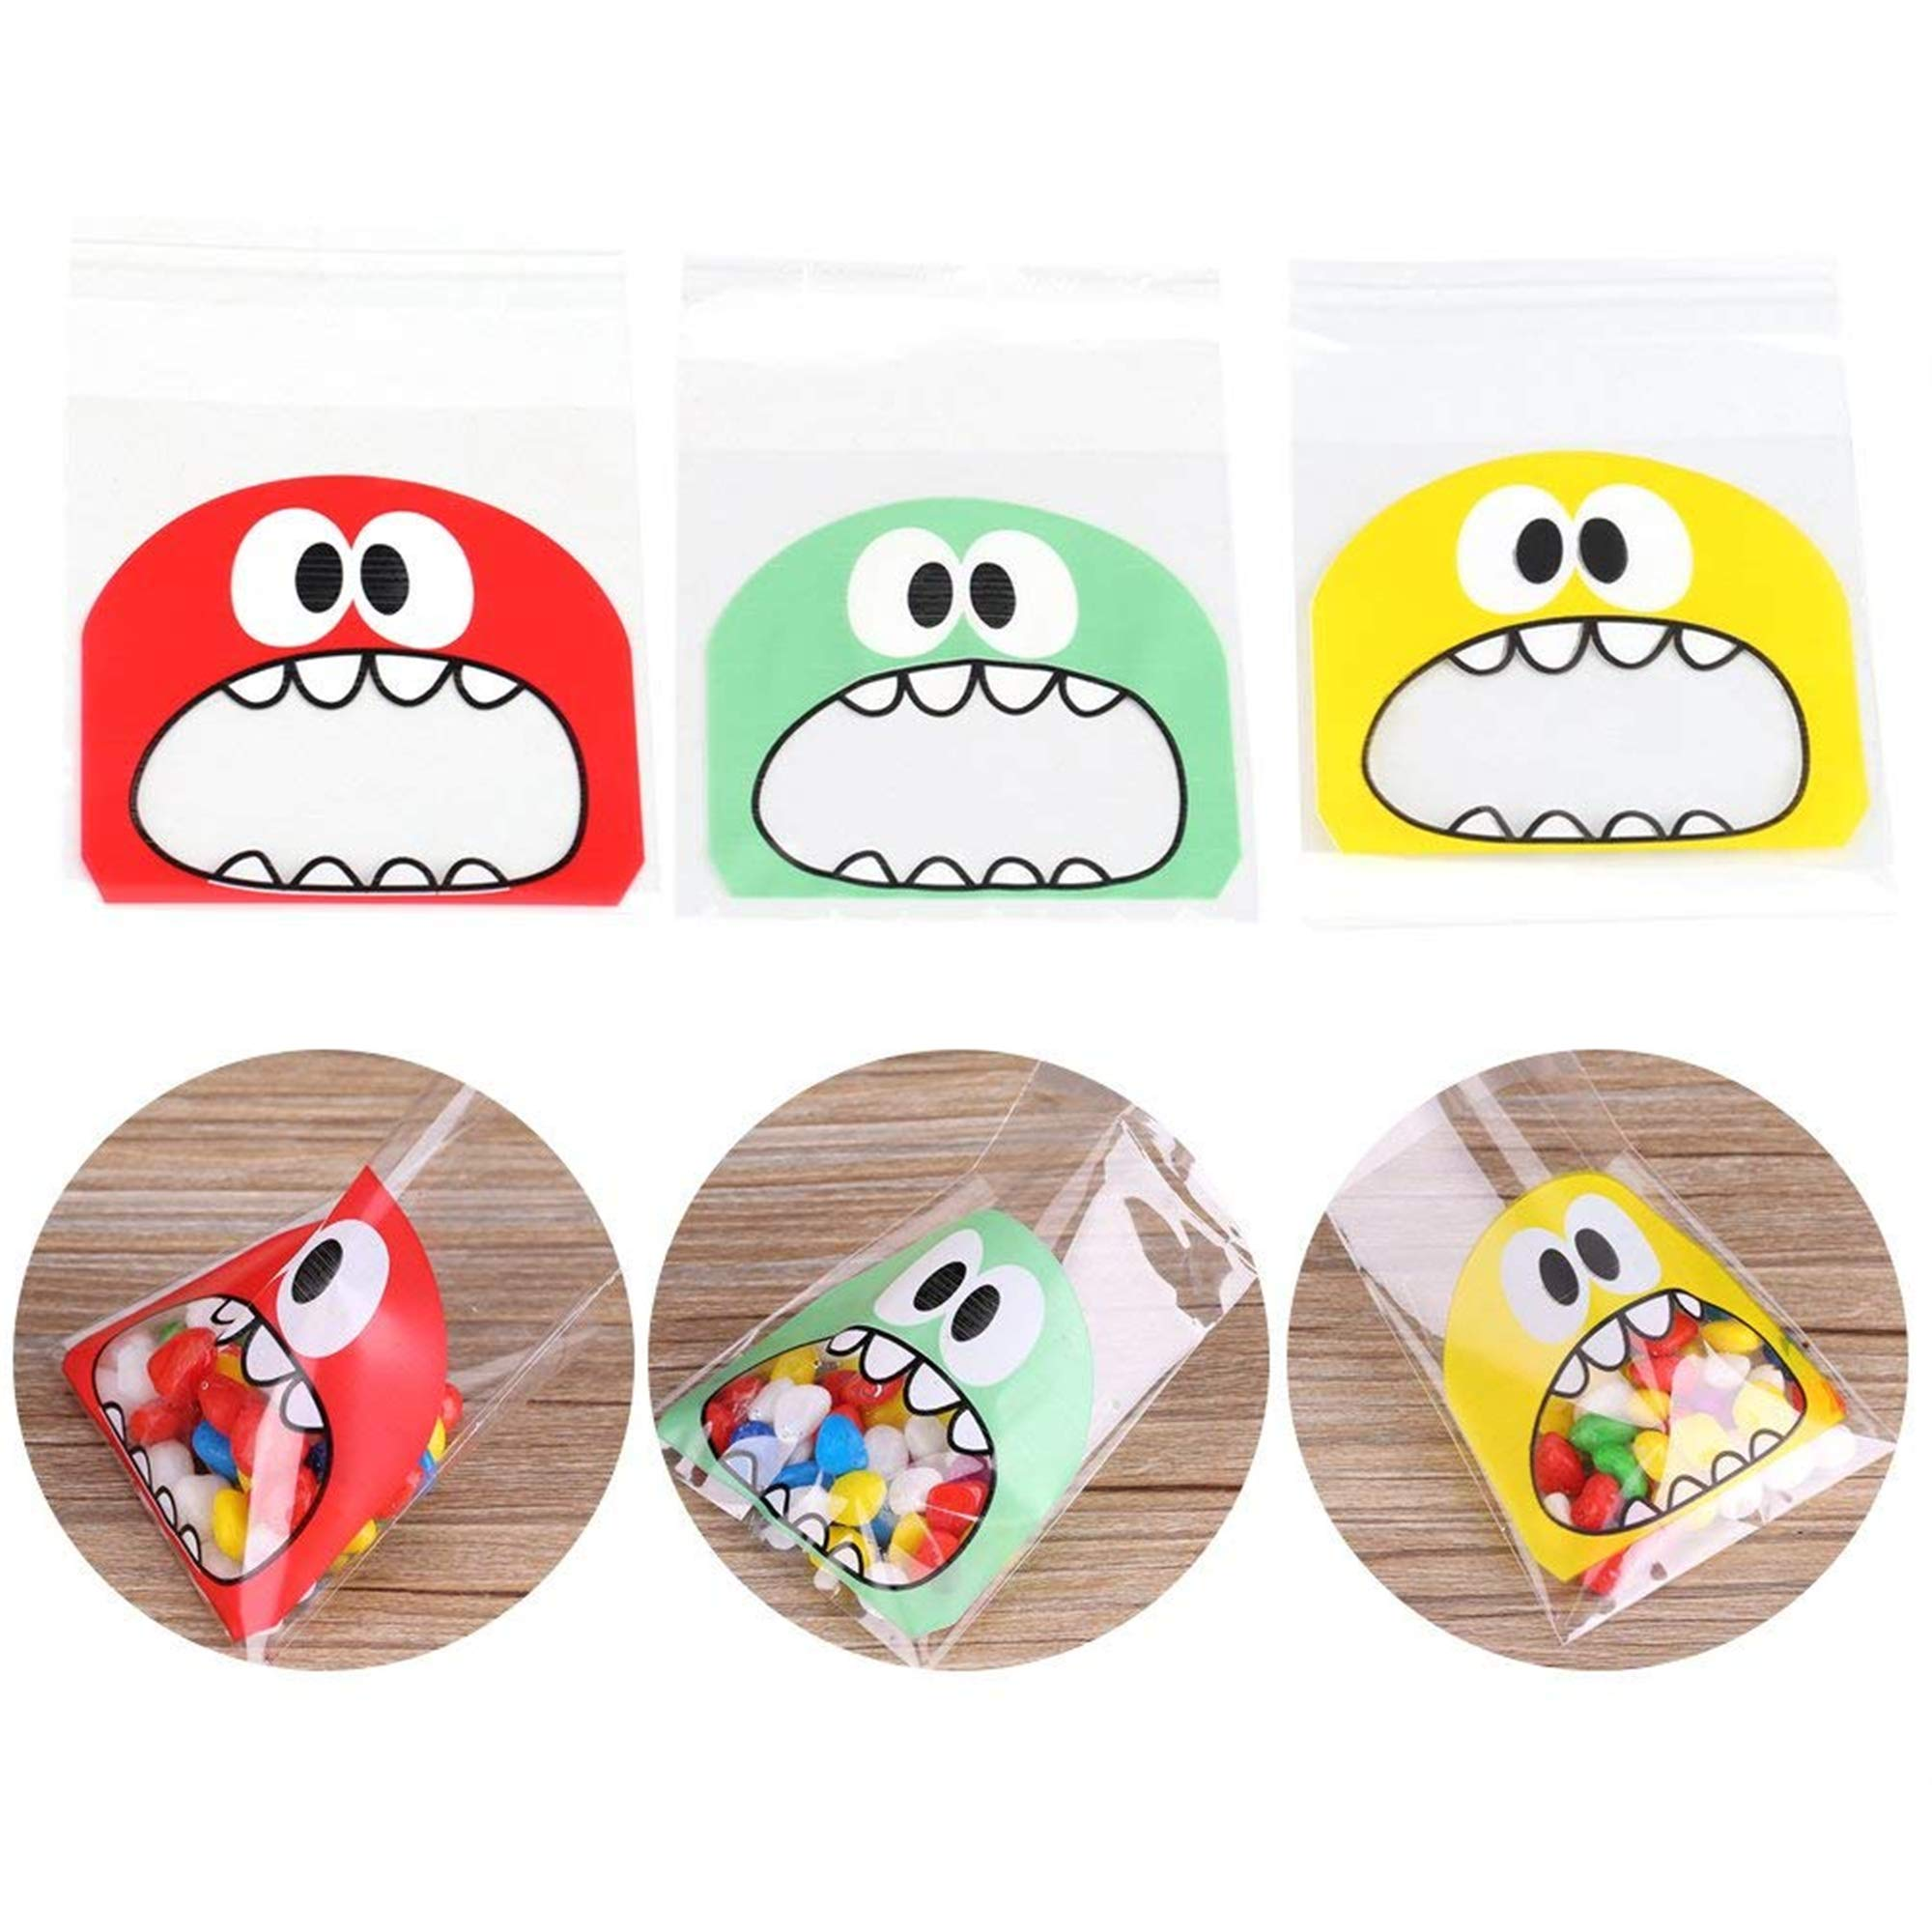 Wootkey Candy Bags 300 pcs 4'' Big Mouth Monster Self Adhesive OPP Cookie Bakery Decorating bags Biscuit Roasting Treat Gift DIY Plastic Bag by Wootkey (Image #1)